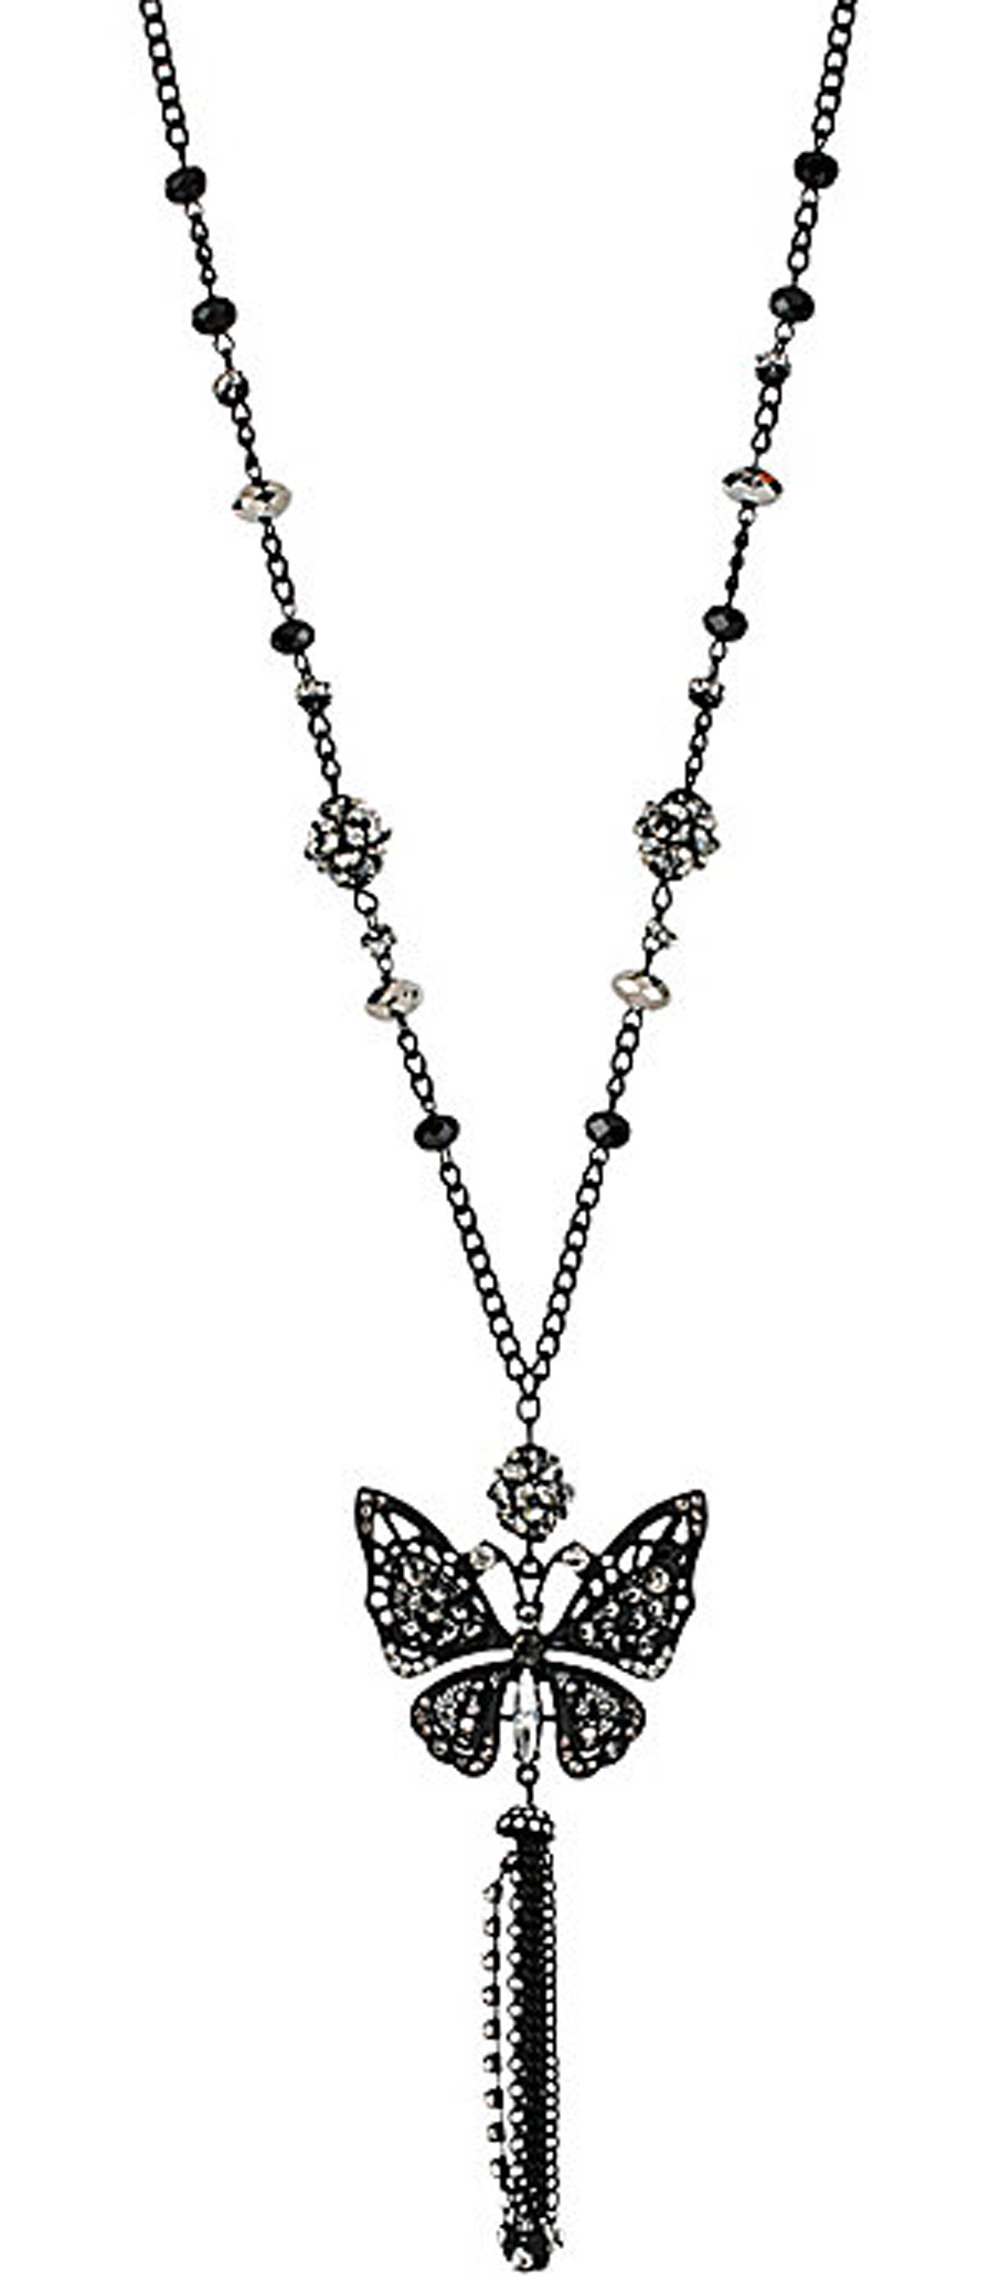 Betsey Johnson Jewelry BLACKOUT BUTTERFLY PENDENT NECKLACE